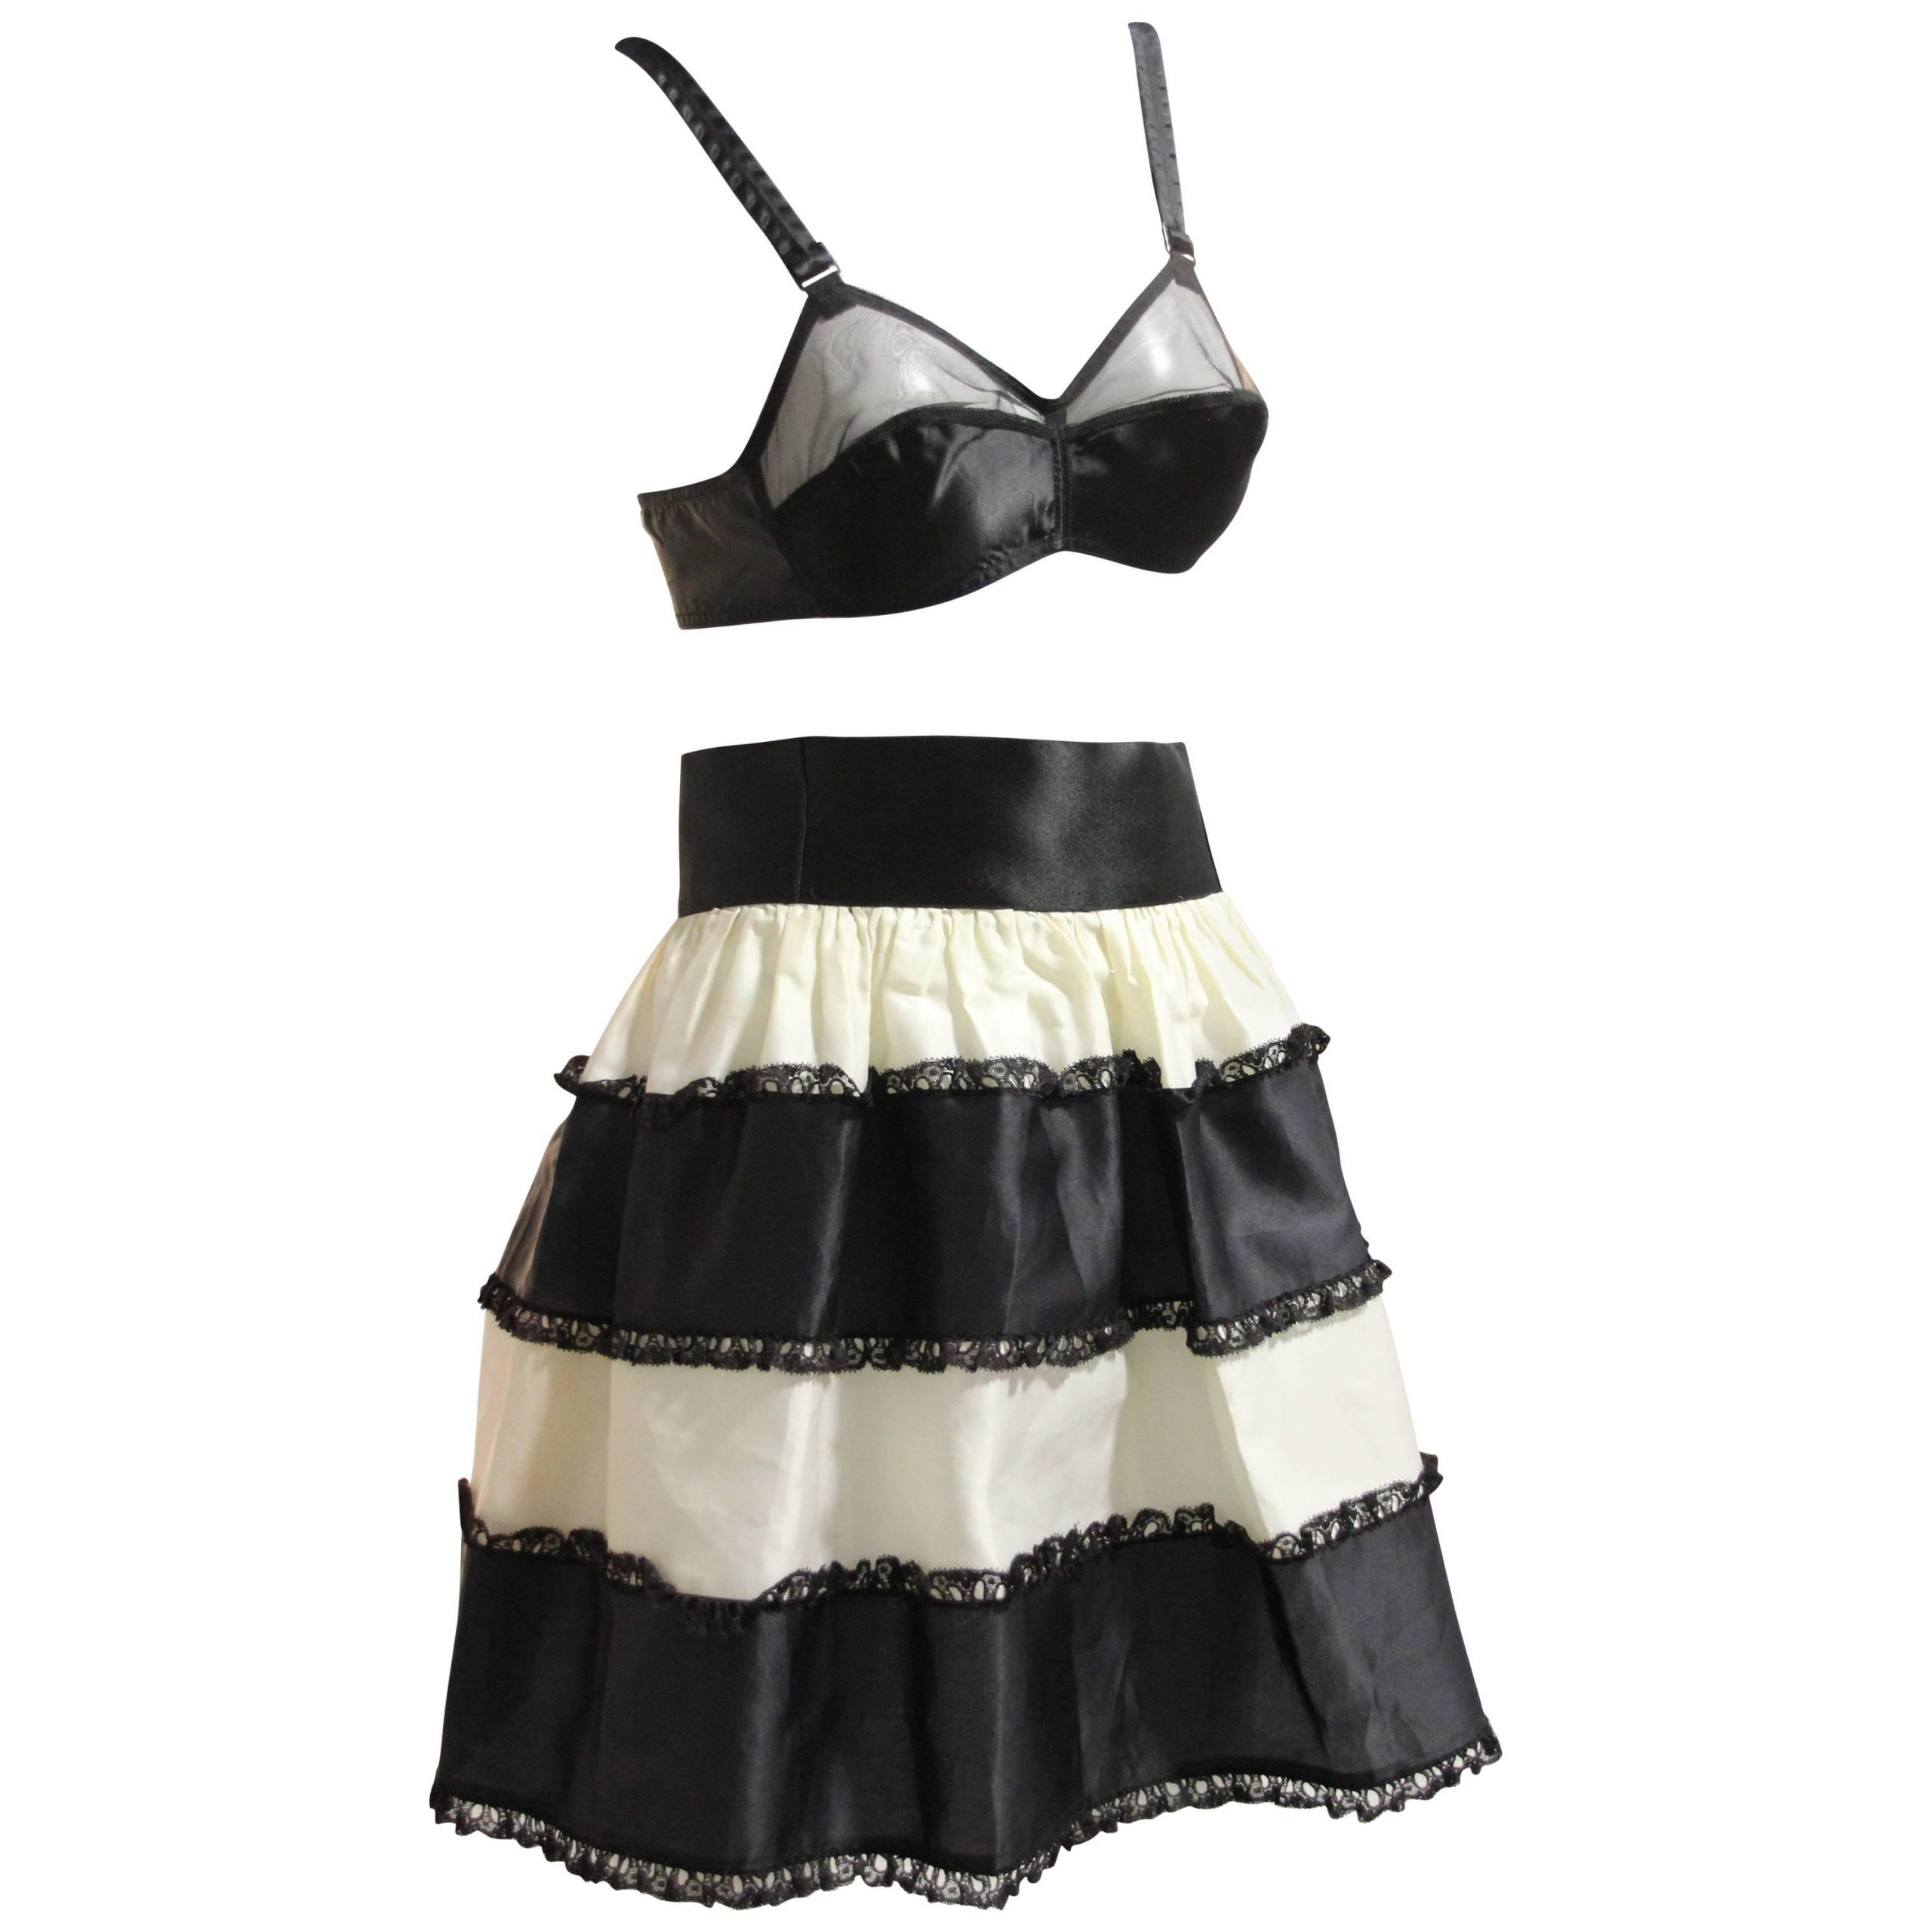 White Ruffled Sheer Petticoat Tier Pairs In Current 1950s French Maid Ensemble – Bra W Tiered Organza Black And (View 16 of 20)